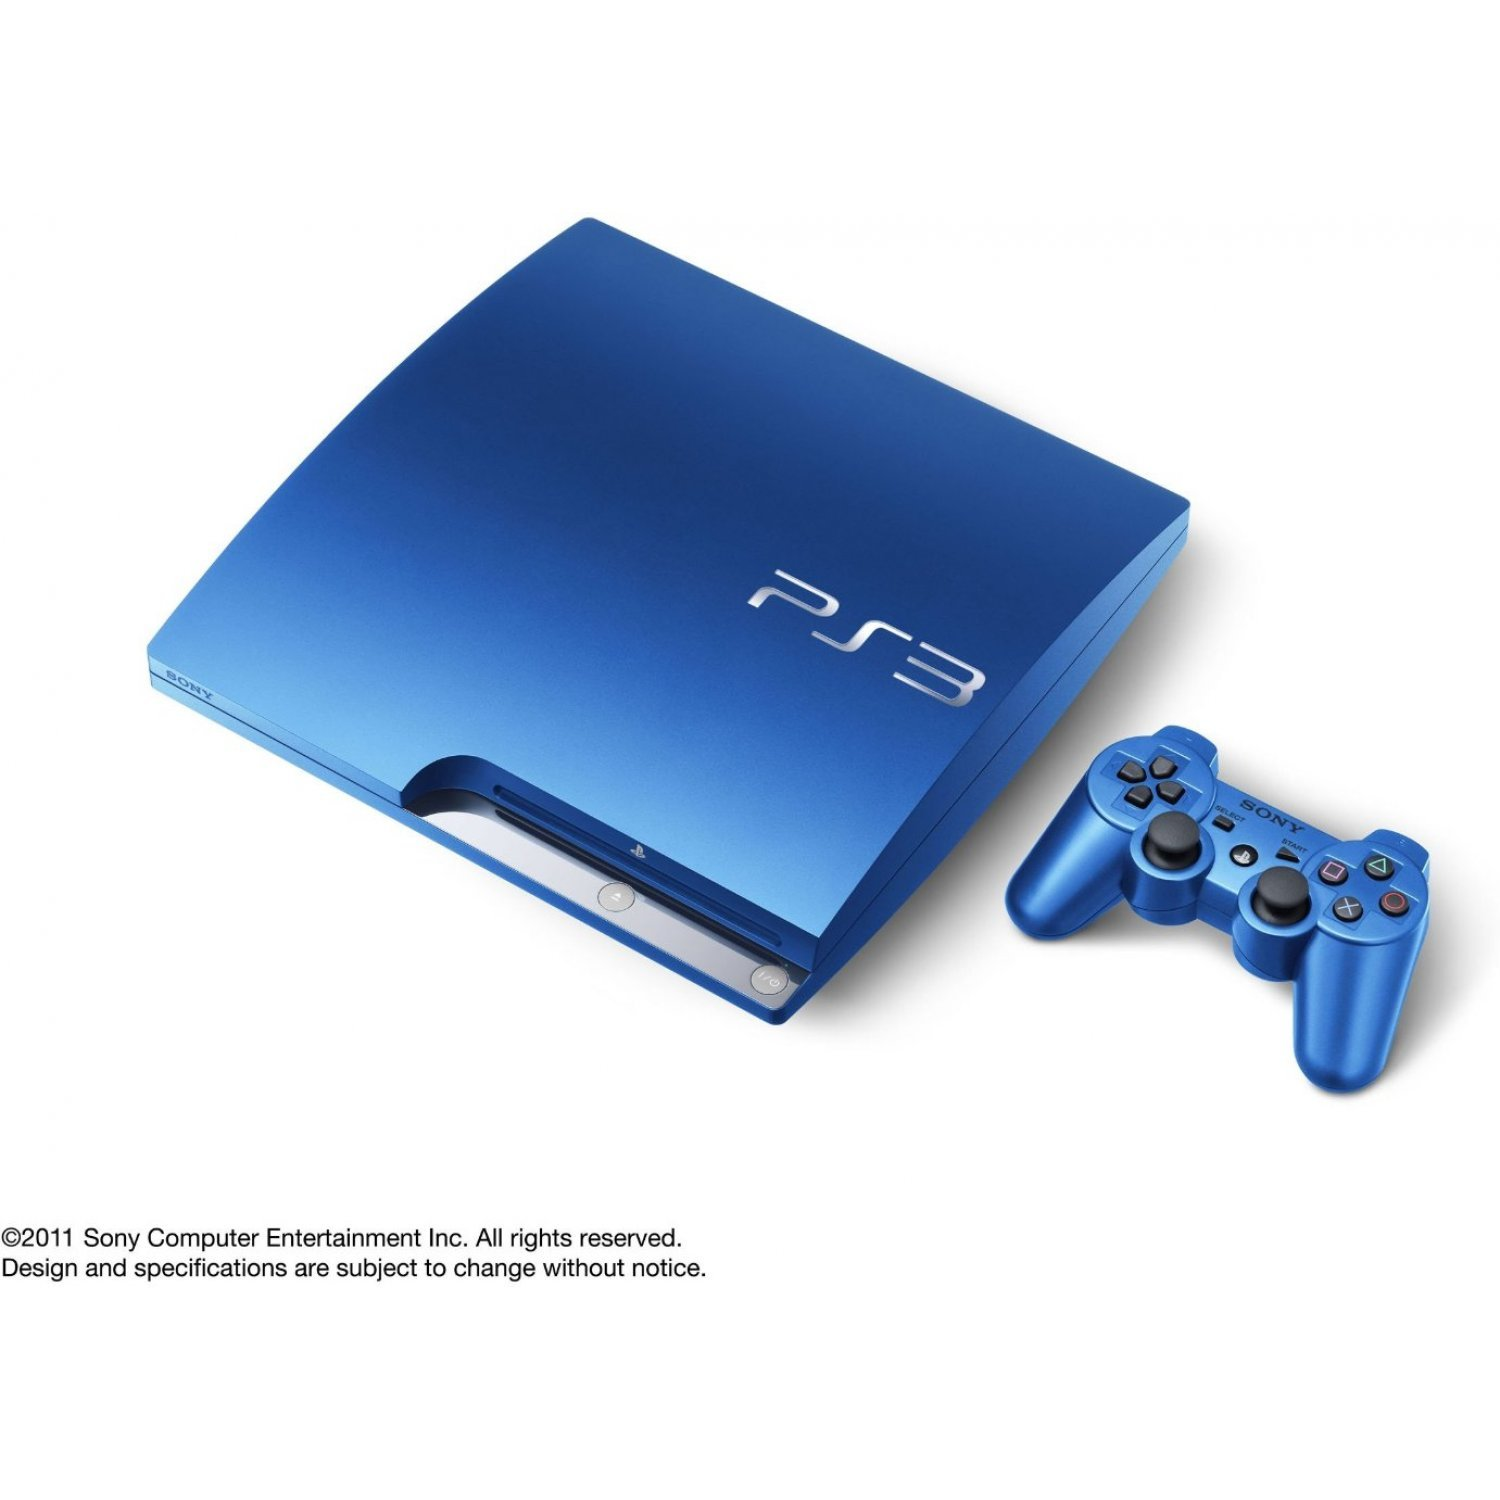 Playstation3 Slim Console Hdd 320gb Splash Blue Model 110v